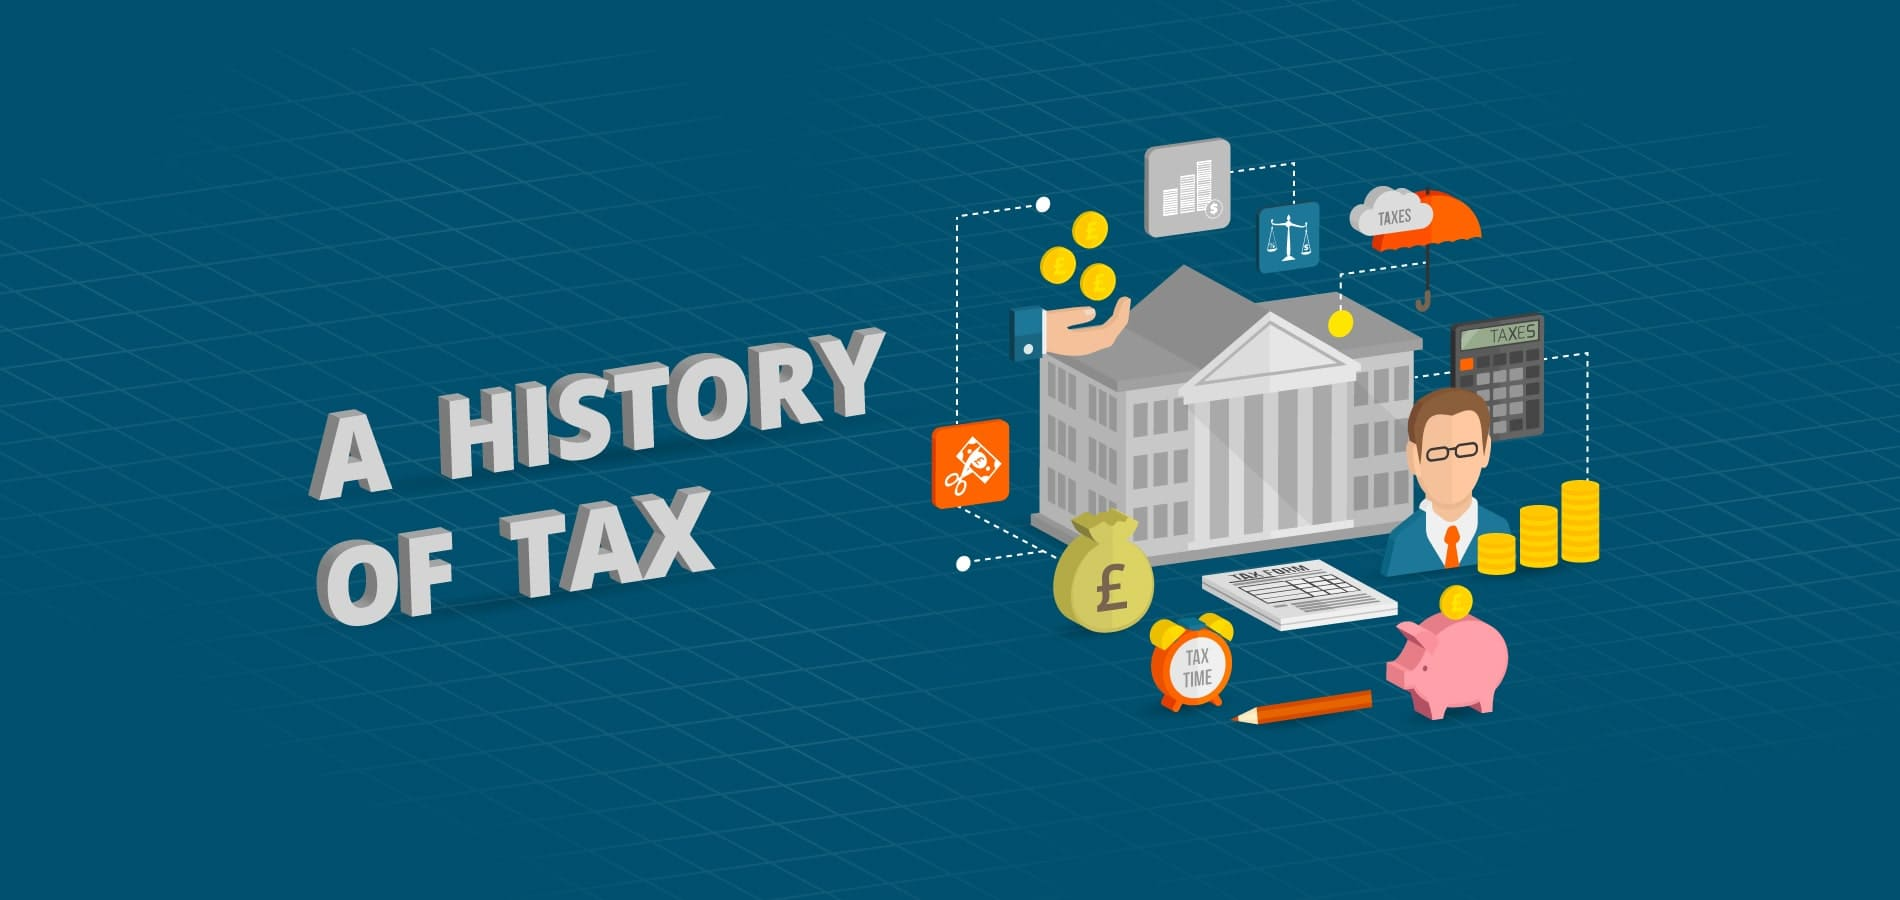 A history of taxation in the UK